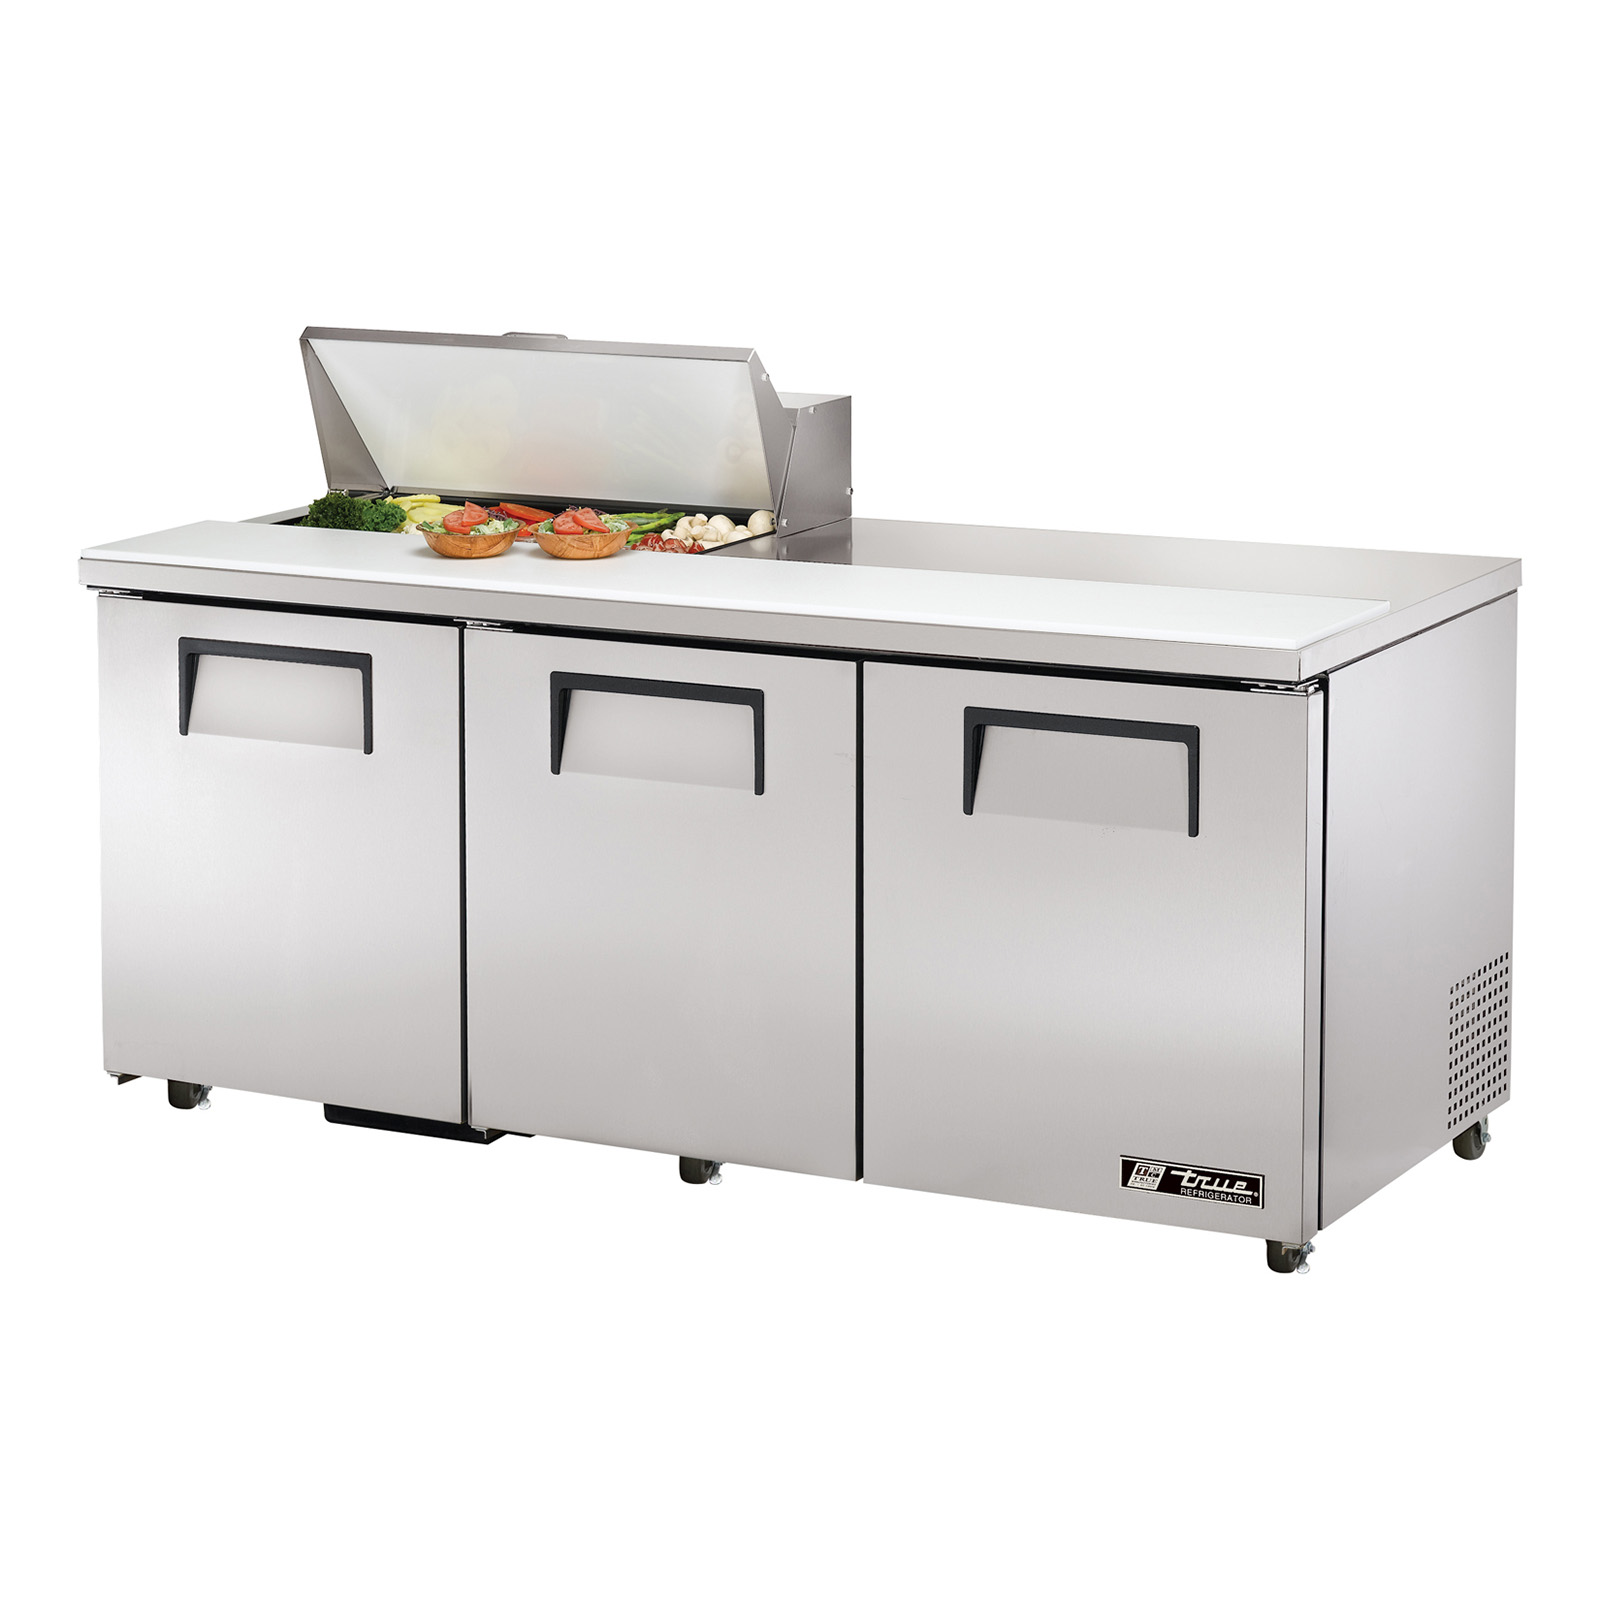 TSSU-72-08-ADA True - ADA Compliant Sandwich/Salad Unit (8) 1/6 size (4